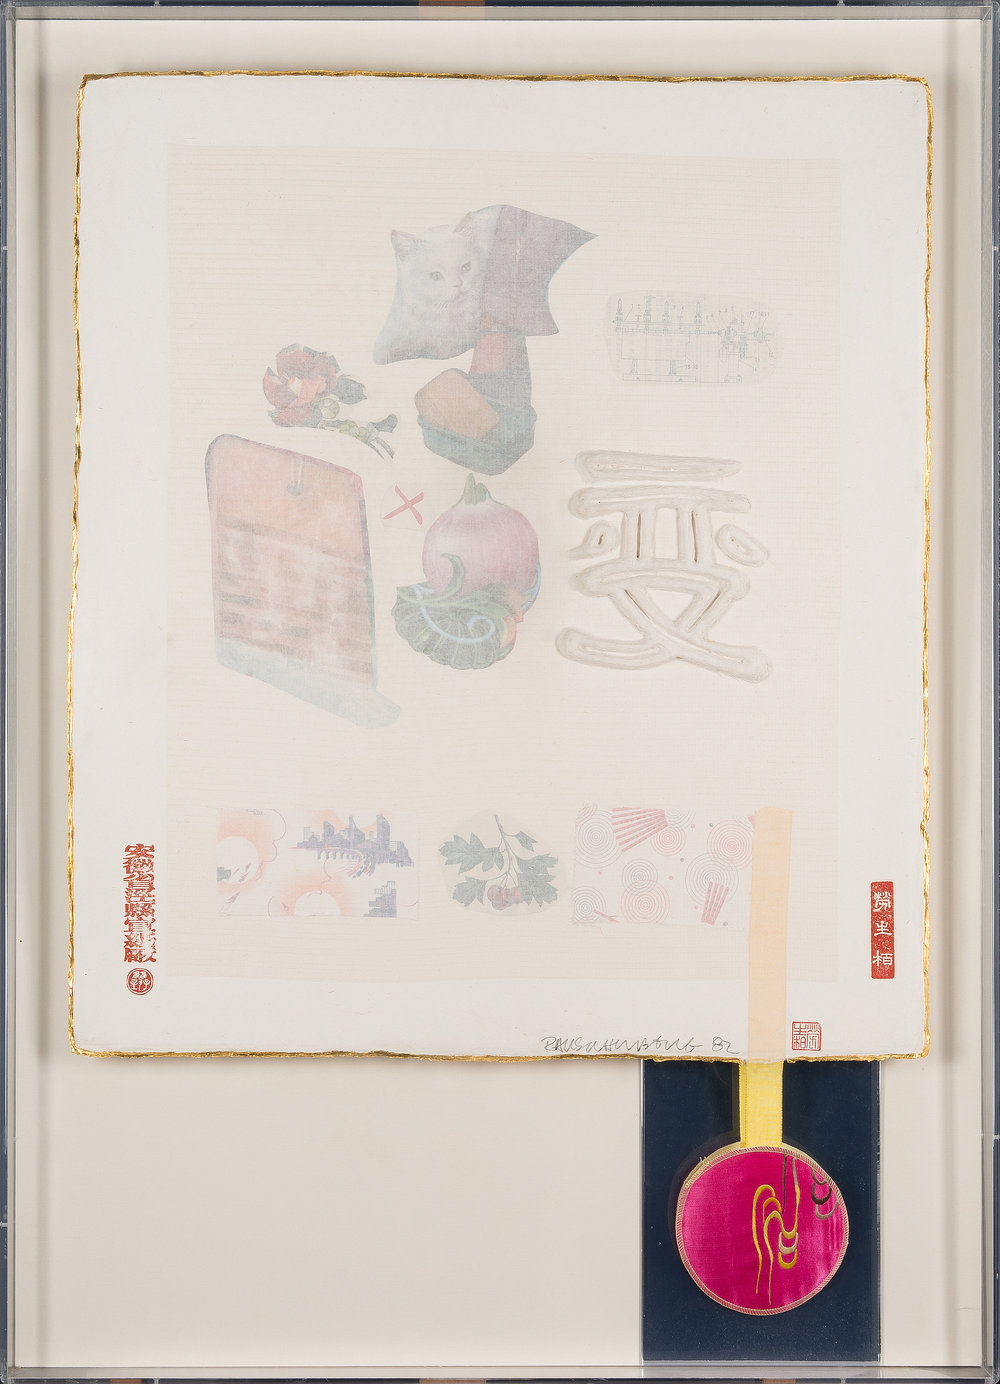 Robert Rauschenberg. Truth (from 7 Characters), 1982.